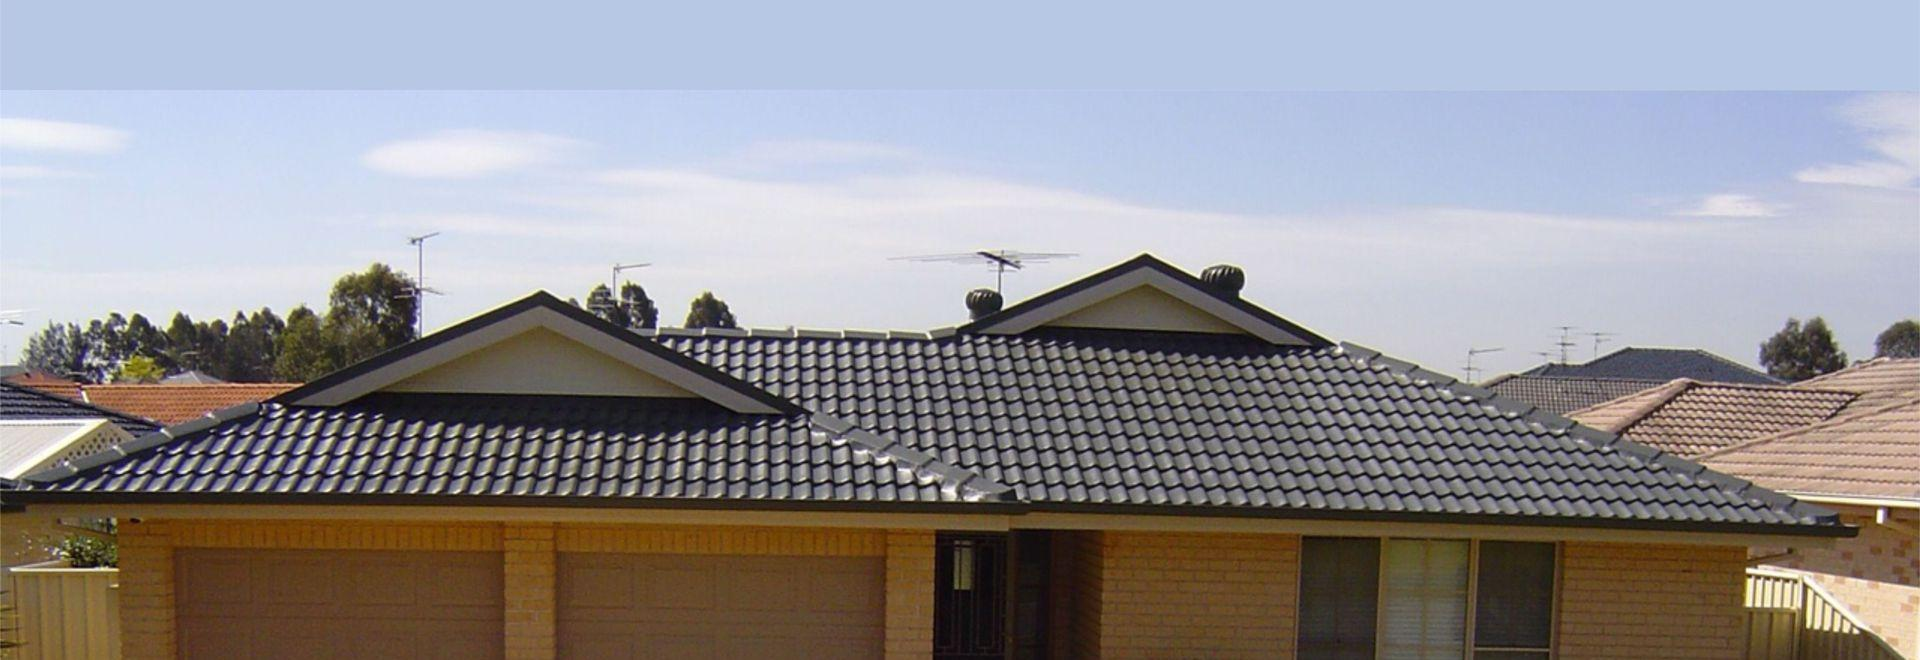 Home Southwest Roofing